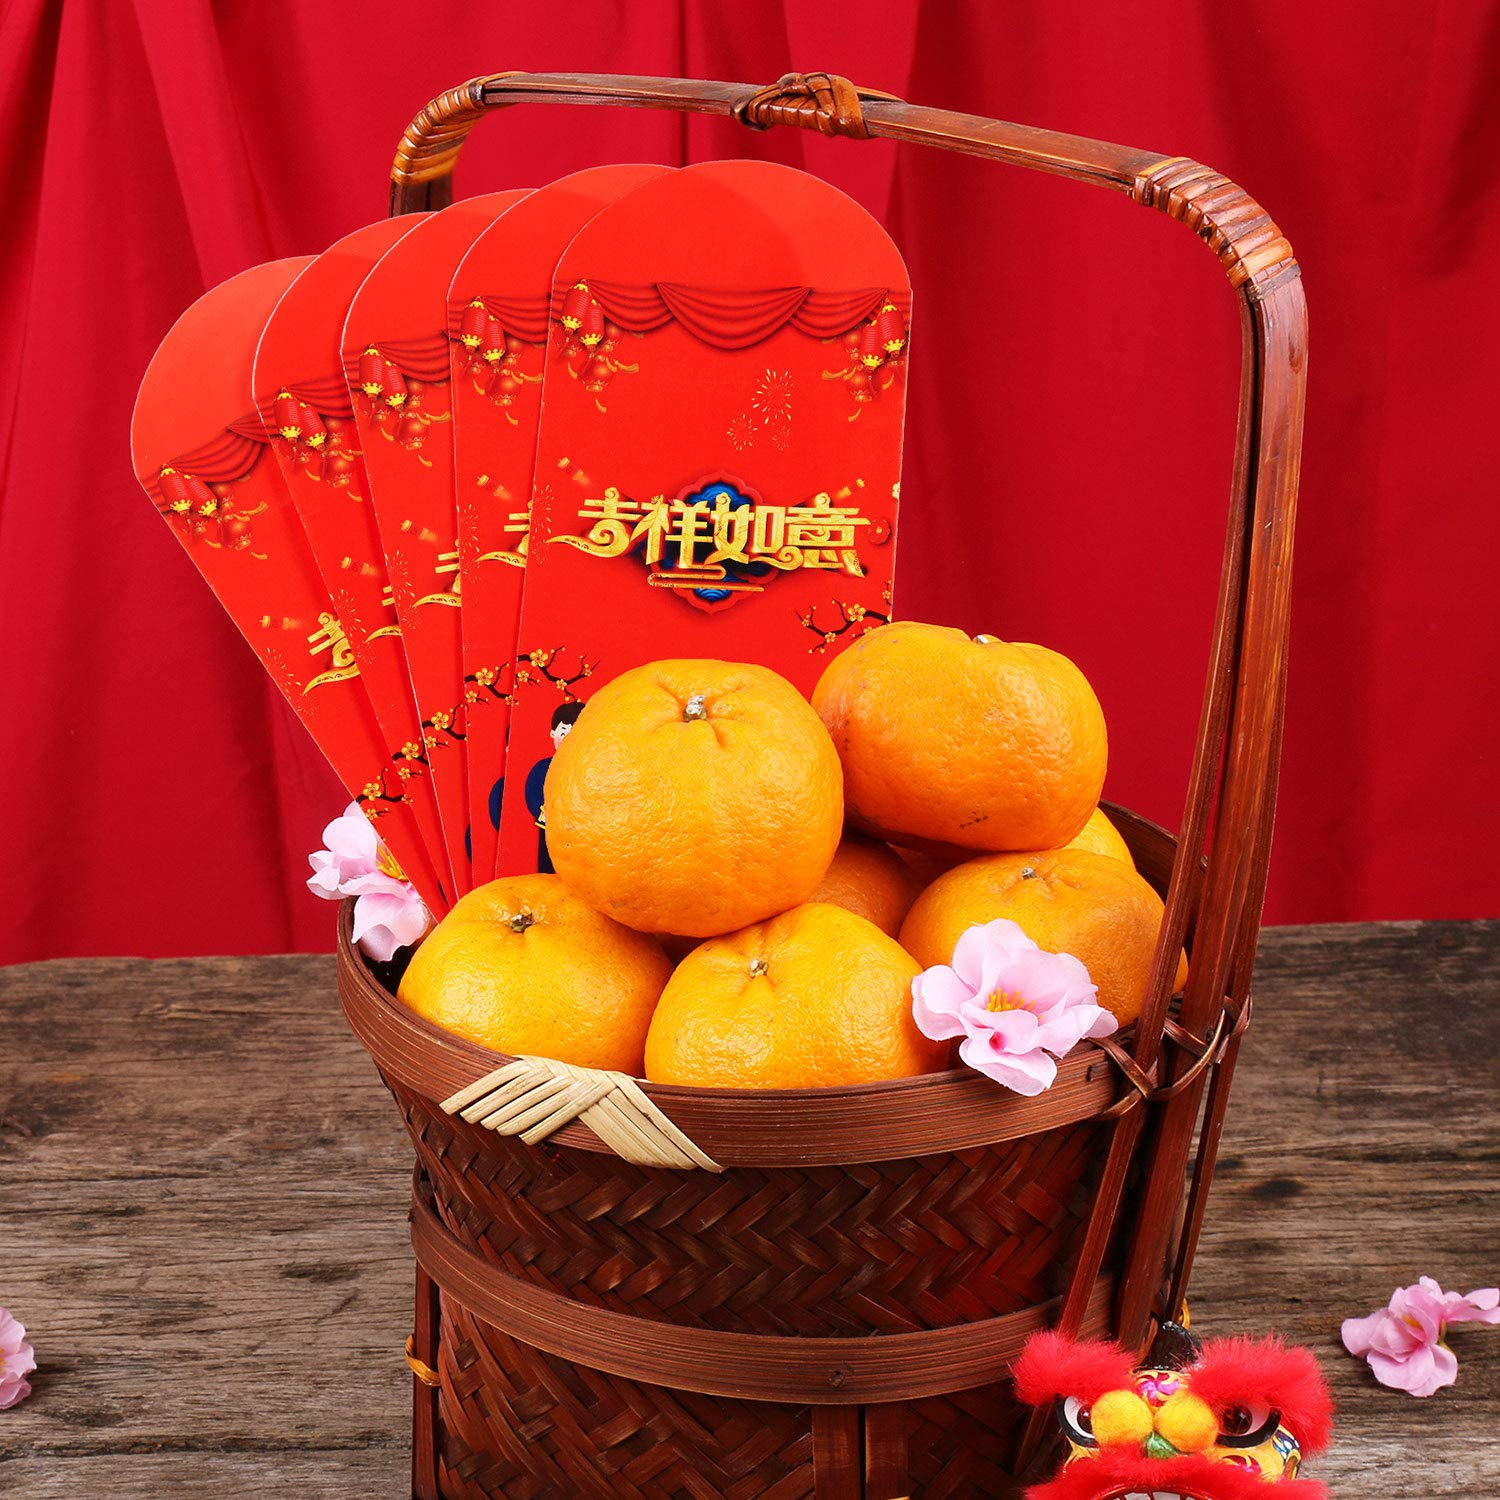 Chinese Couplet Spring Festival New Year Decoration Set Red Envelope Including 59 Inch Chinese Couplet Fu Character Card and Chinese Paper-Cut Window Sticker